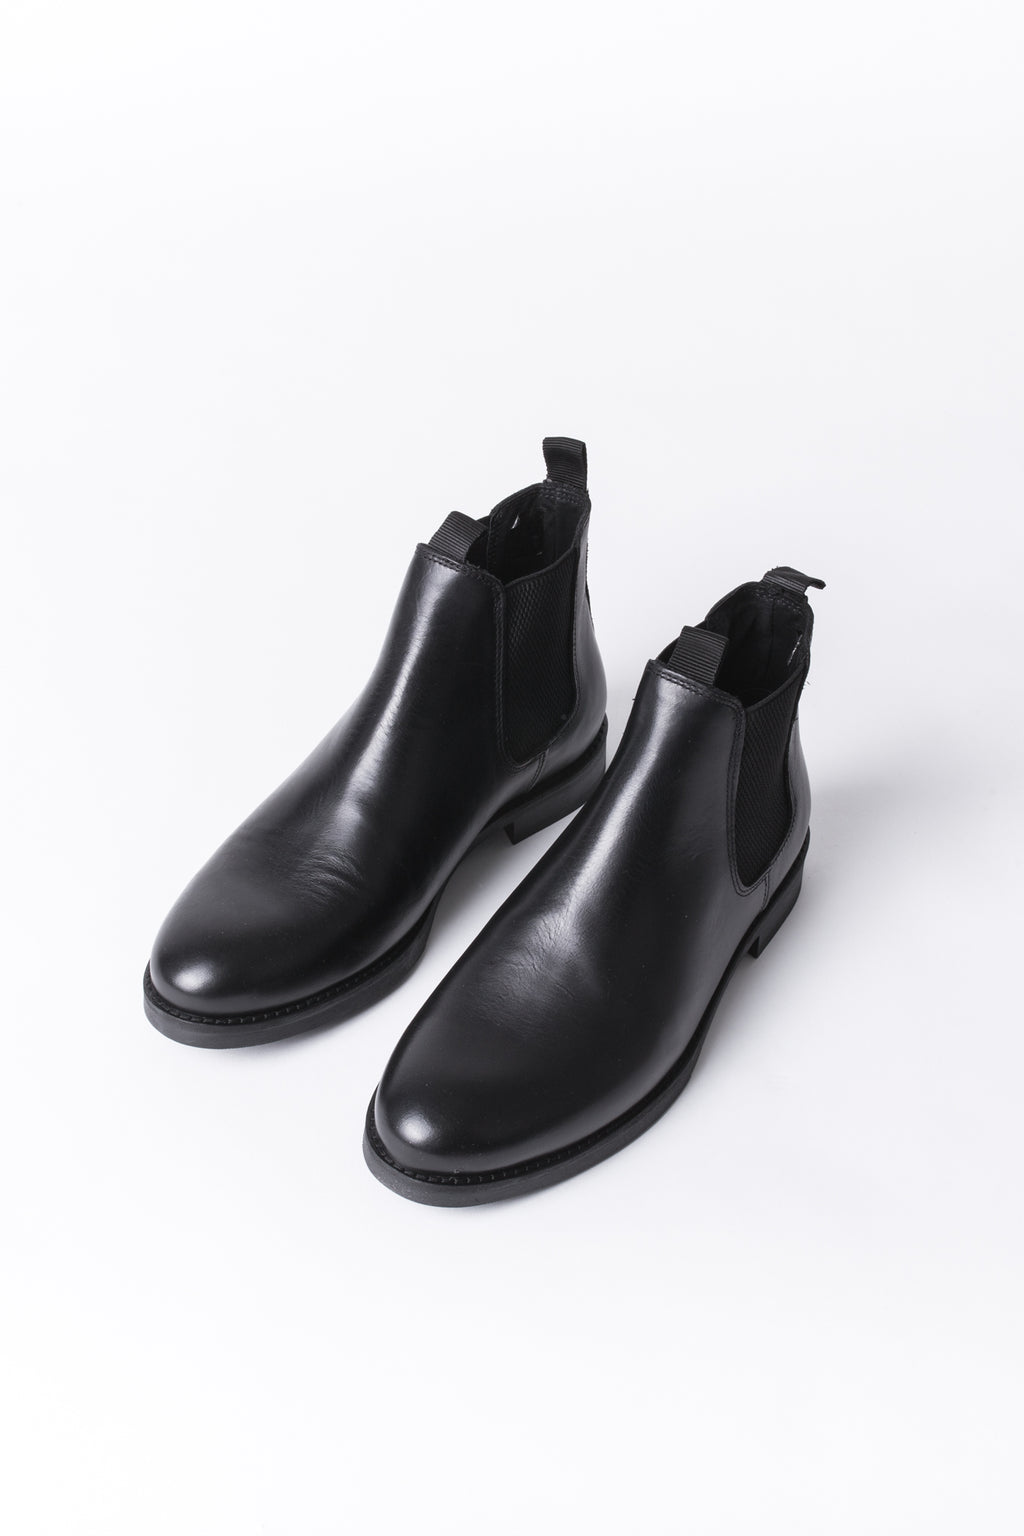 Chelsea Boots - Black Leather - Audace Copenhagen